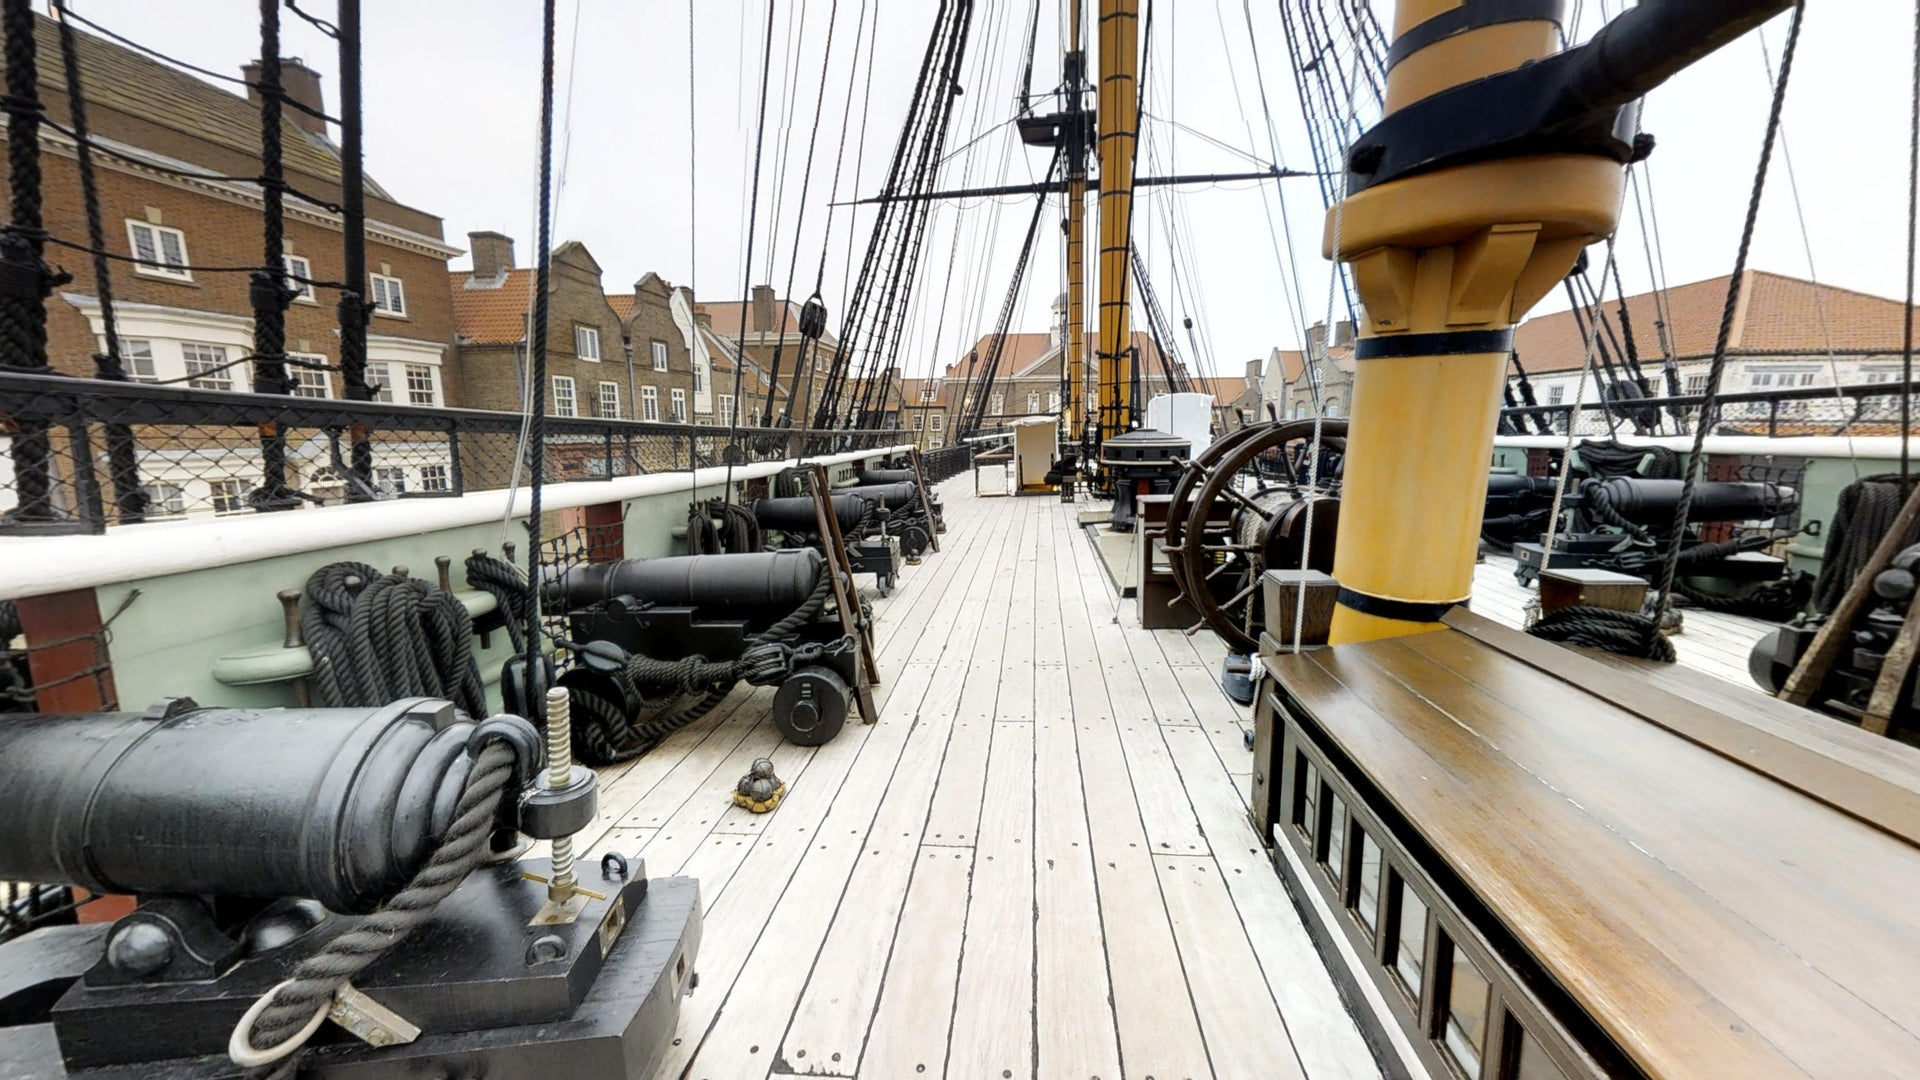 The National Museum of the Royal Navy: HMS Trincomalee